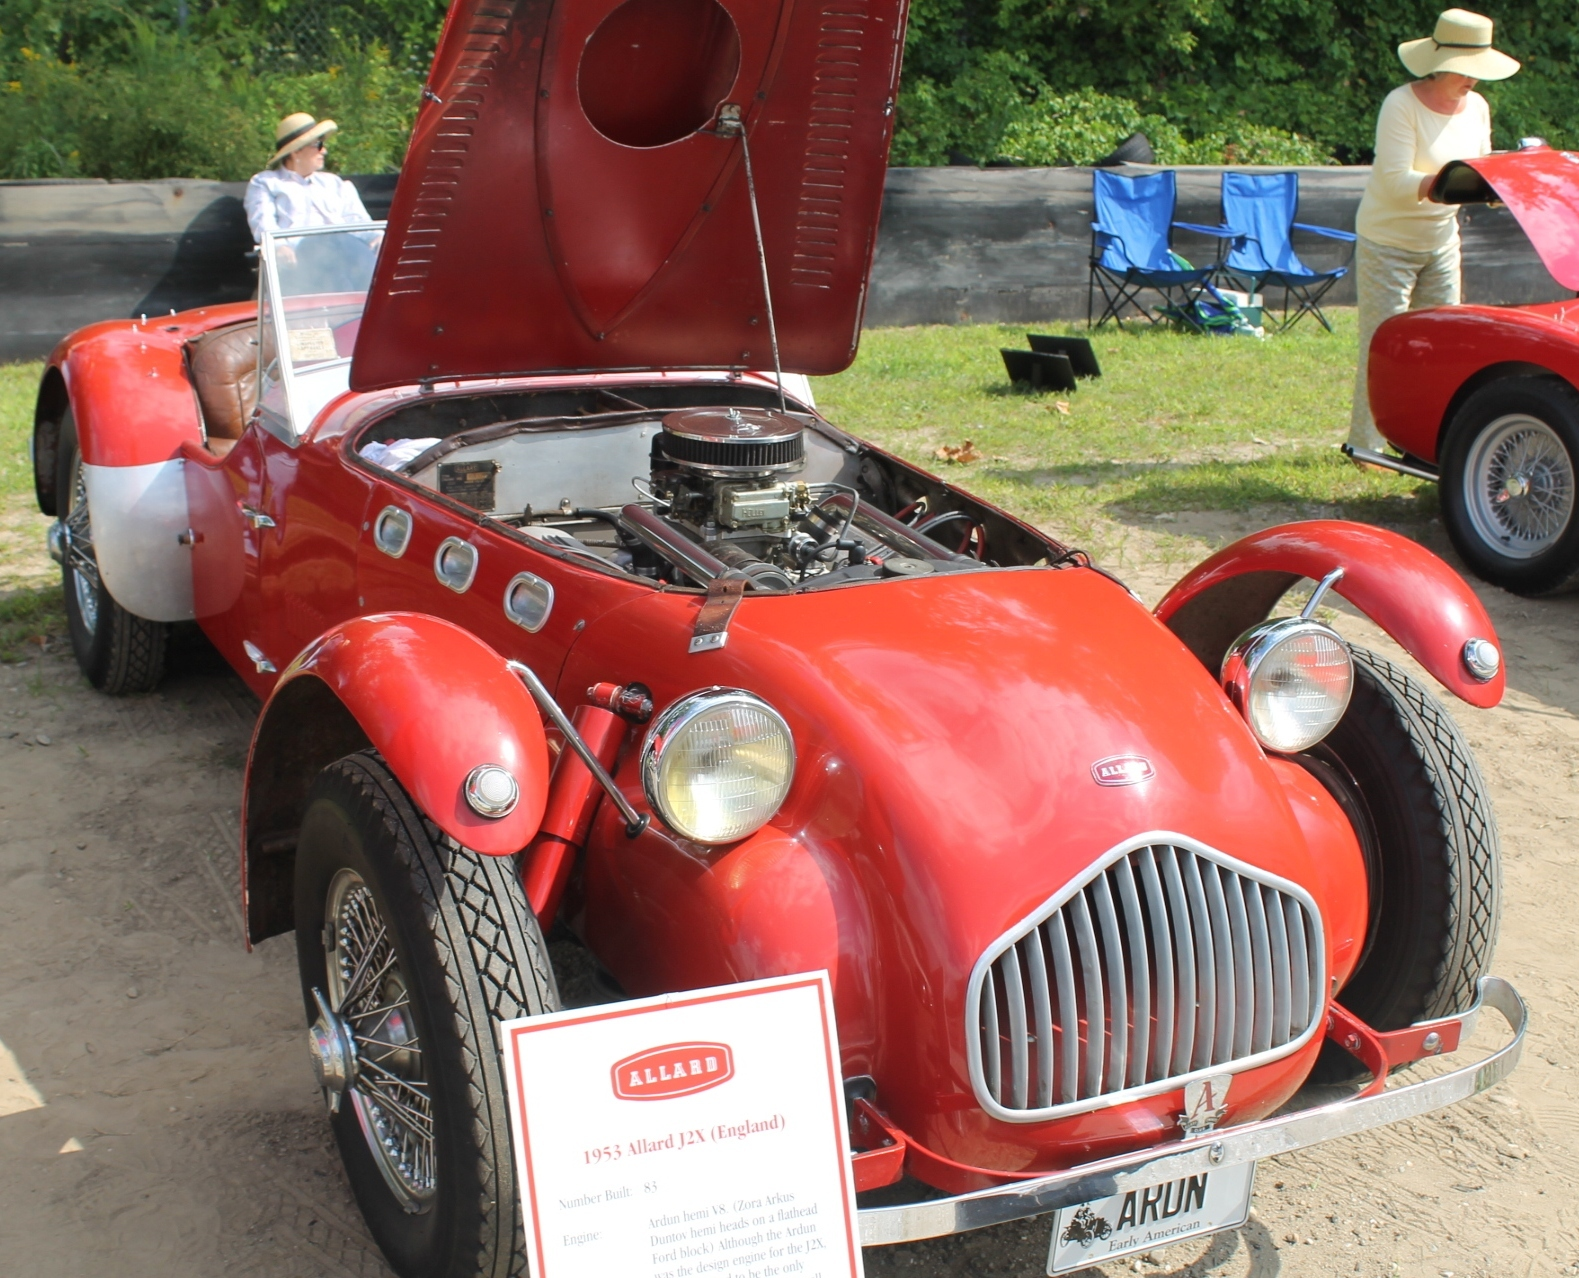 Allard J2x With Ardun Heads On A Ford Flathead V8 Engine Diagram The